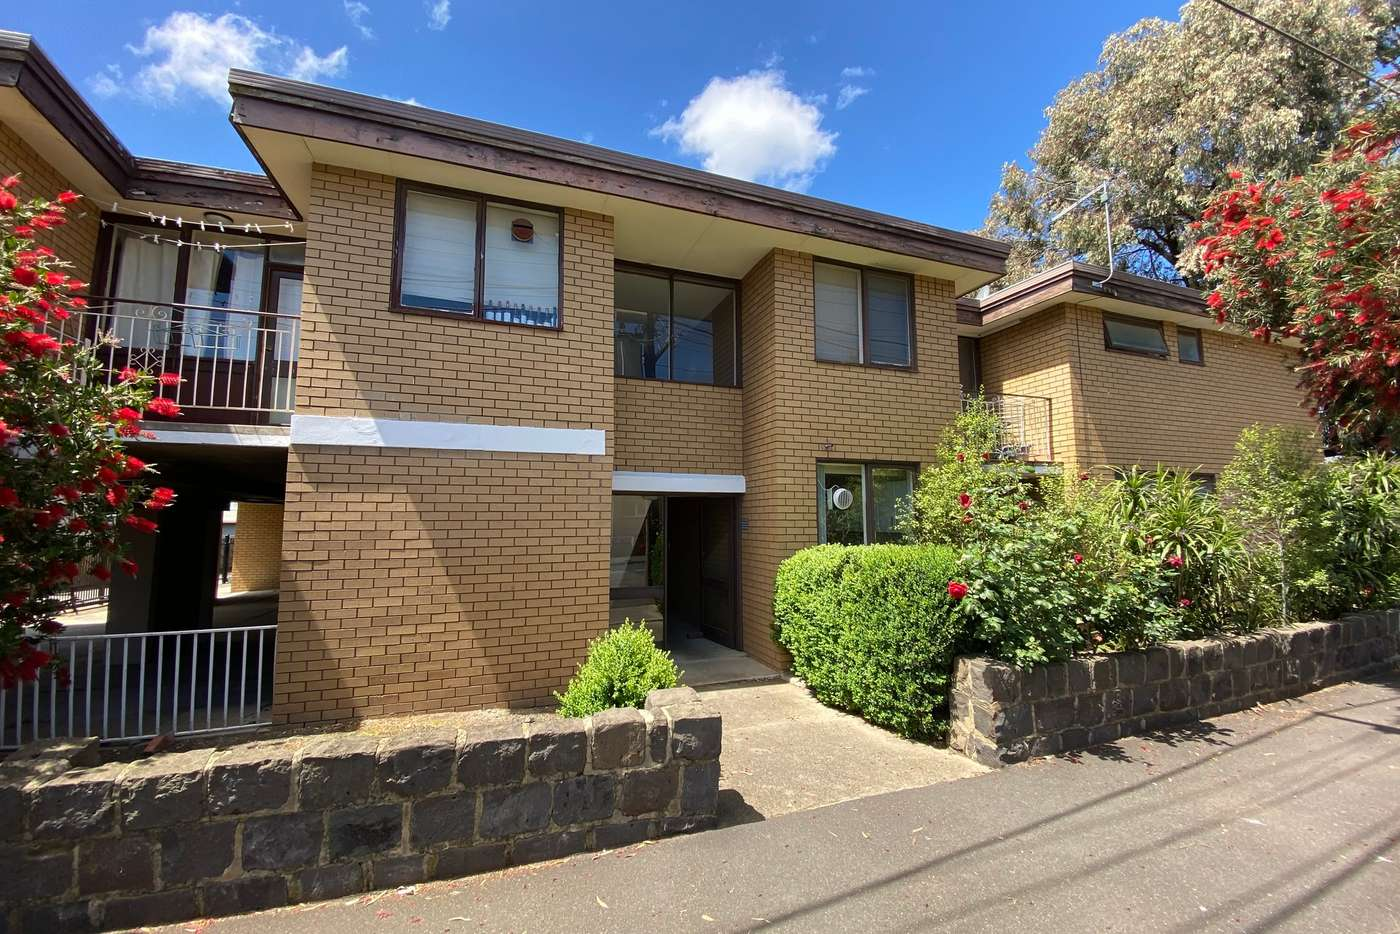 Main view of Homely apartment listing, 4/50 Reynard Street, Coburg VIC 3058